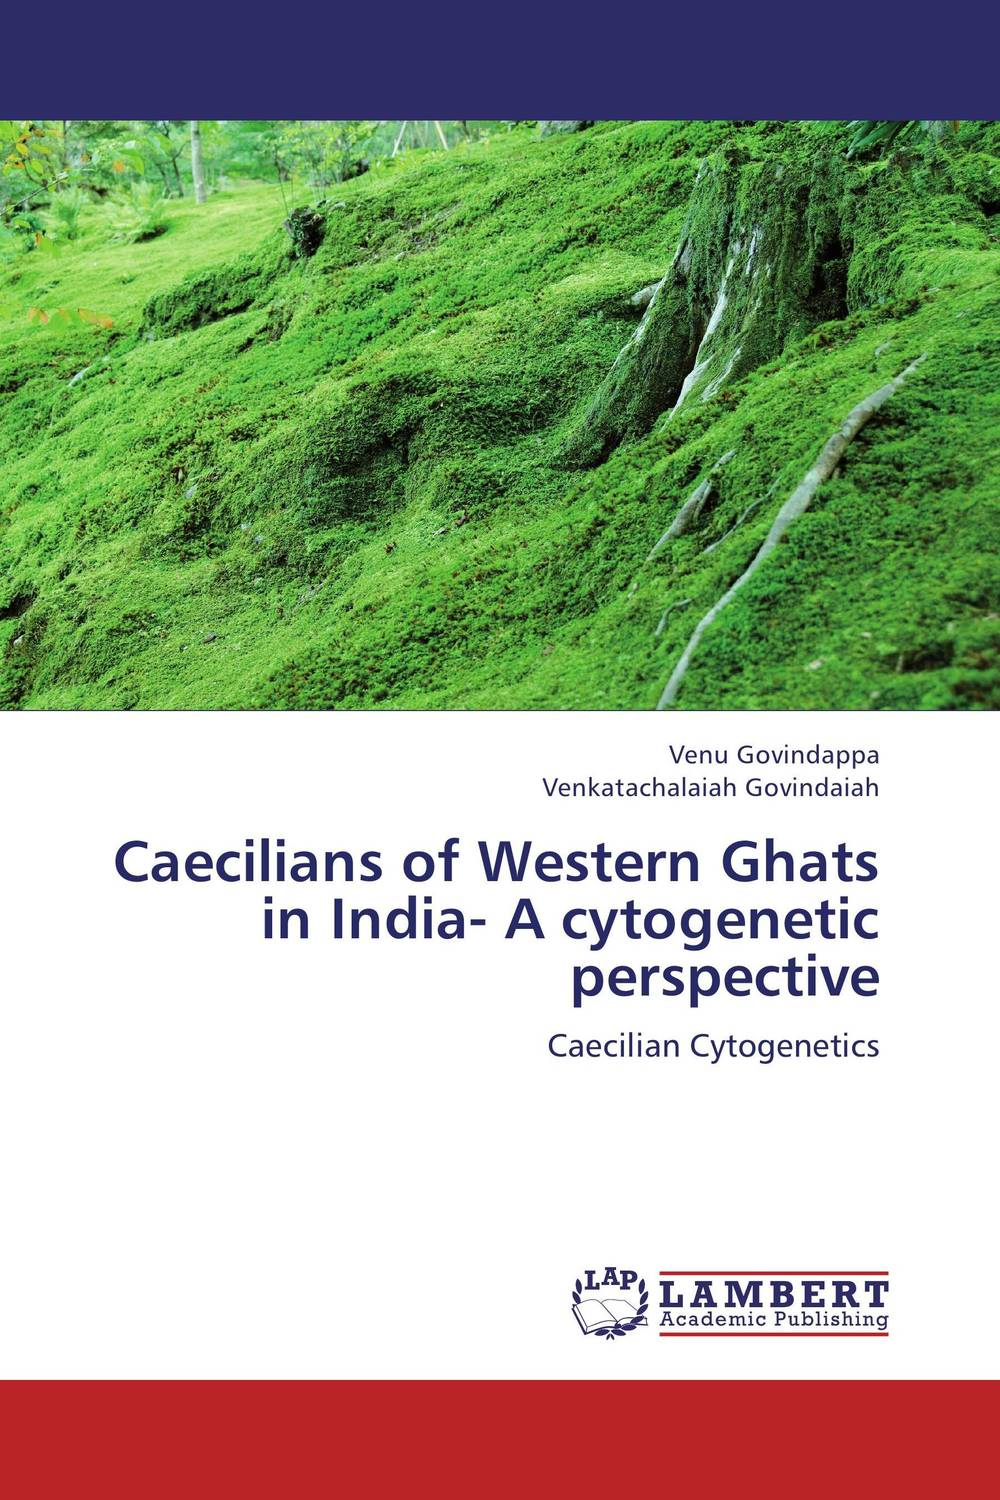 Caecilians of Western Ghats in India- A cytogenetic perspective detailed morphology of two species of phthiraptera from pakistan